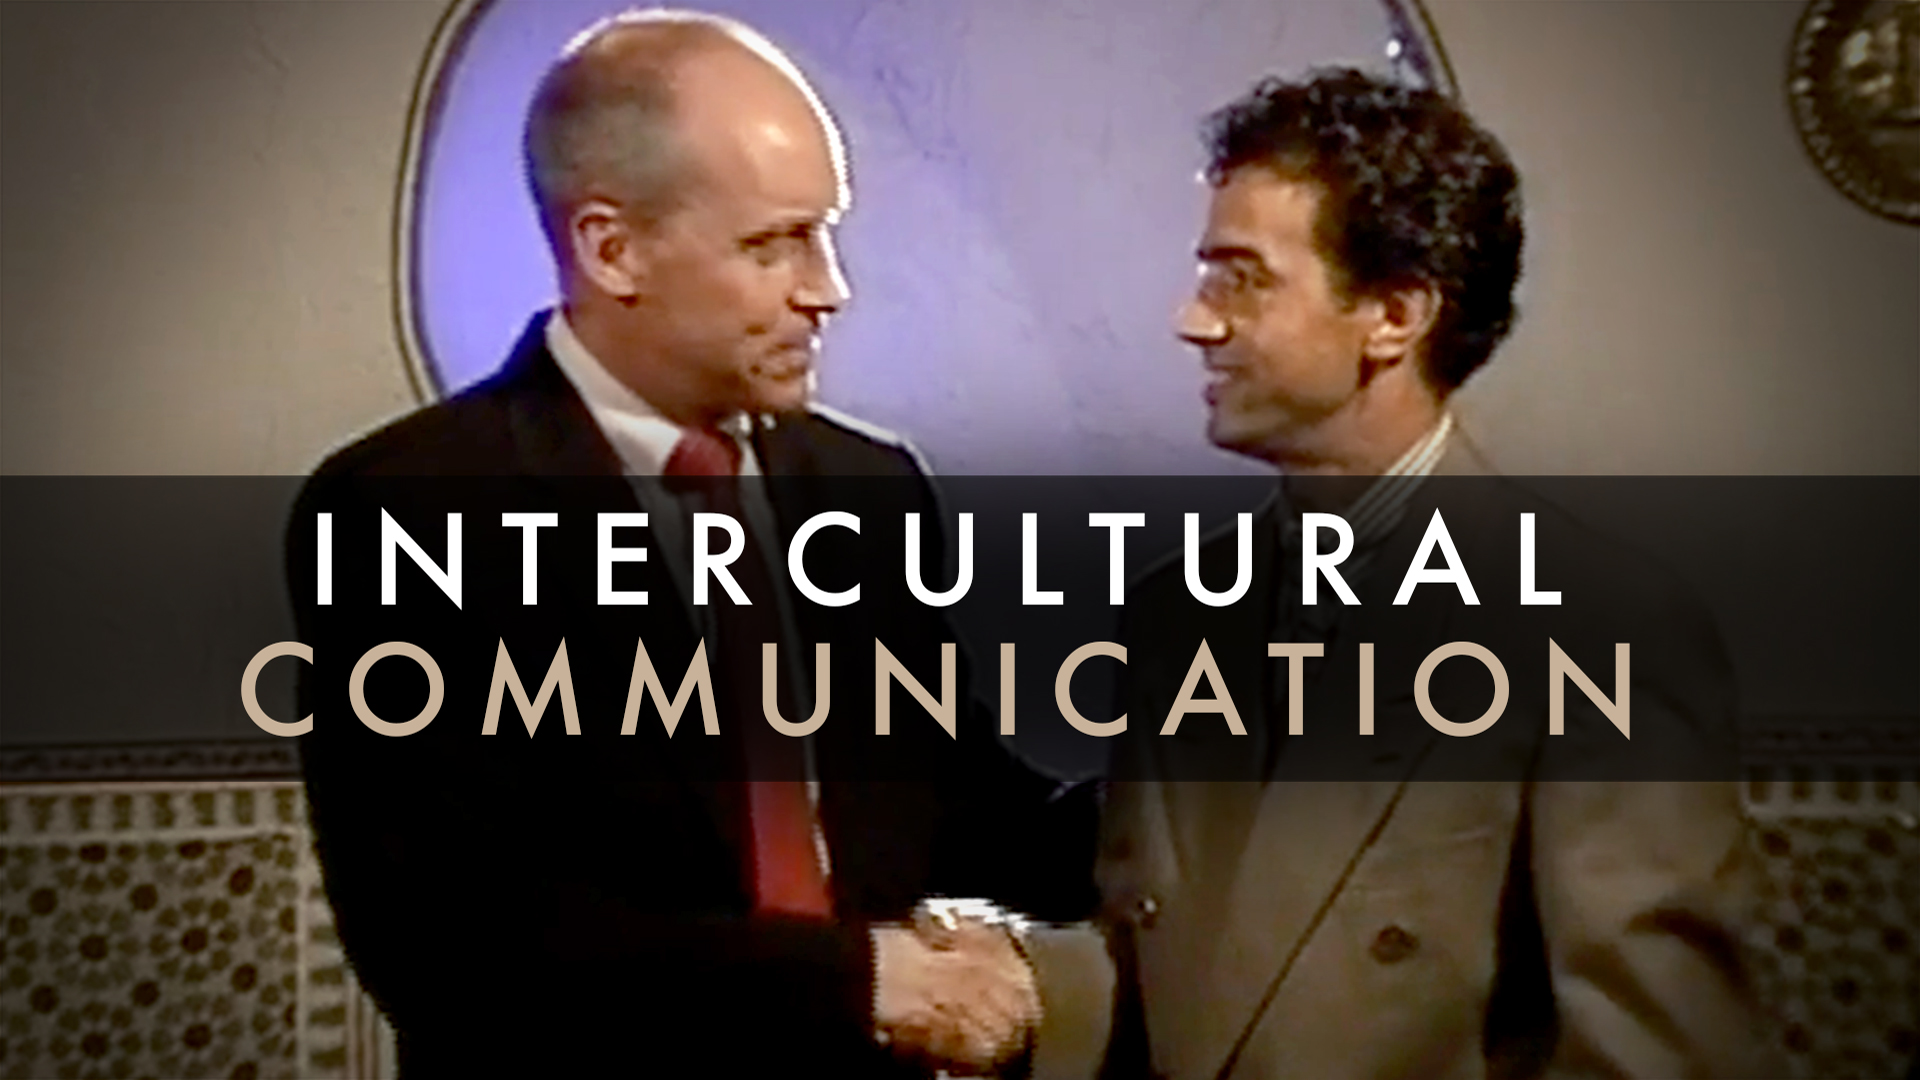 Intercultural Communication video